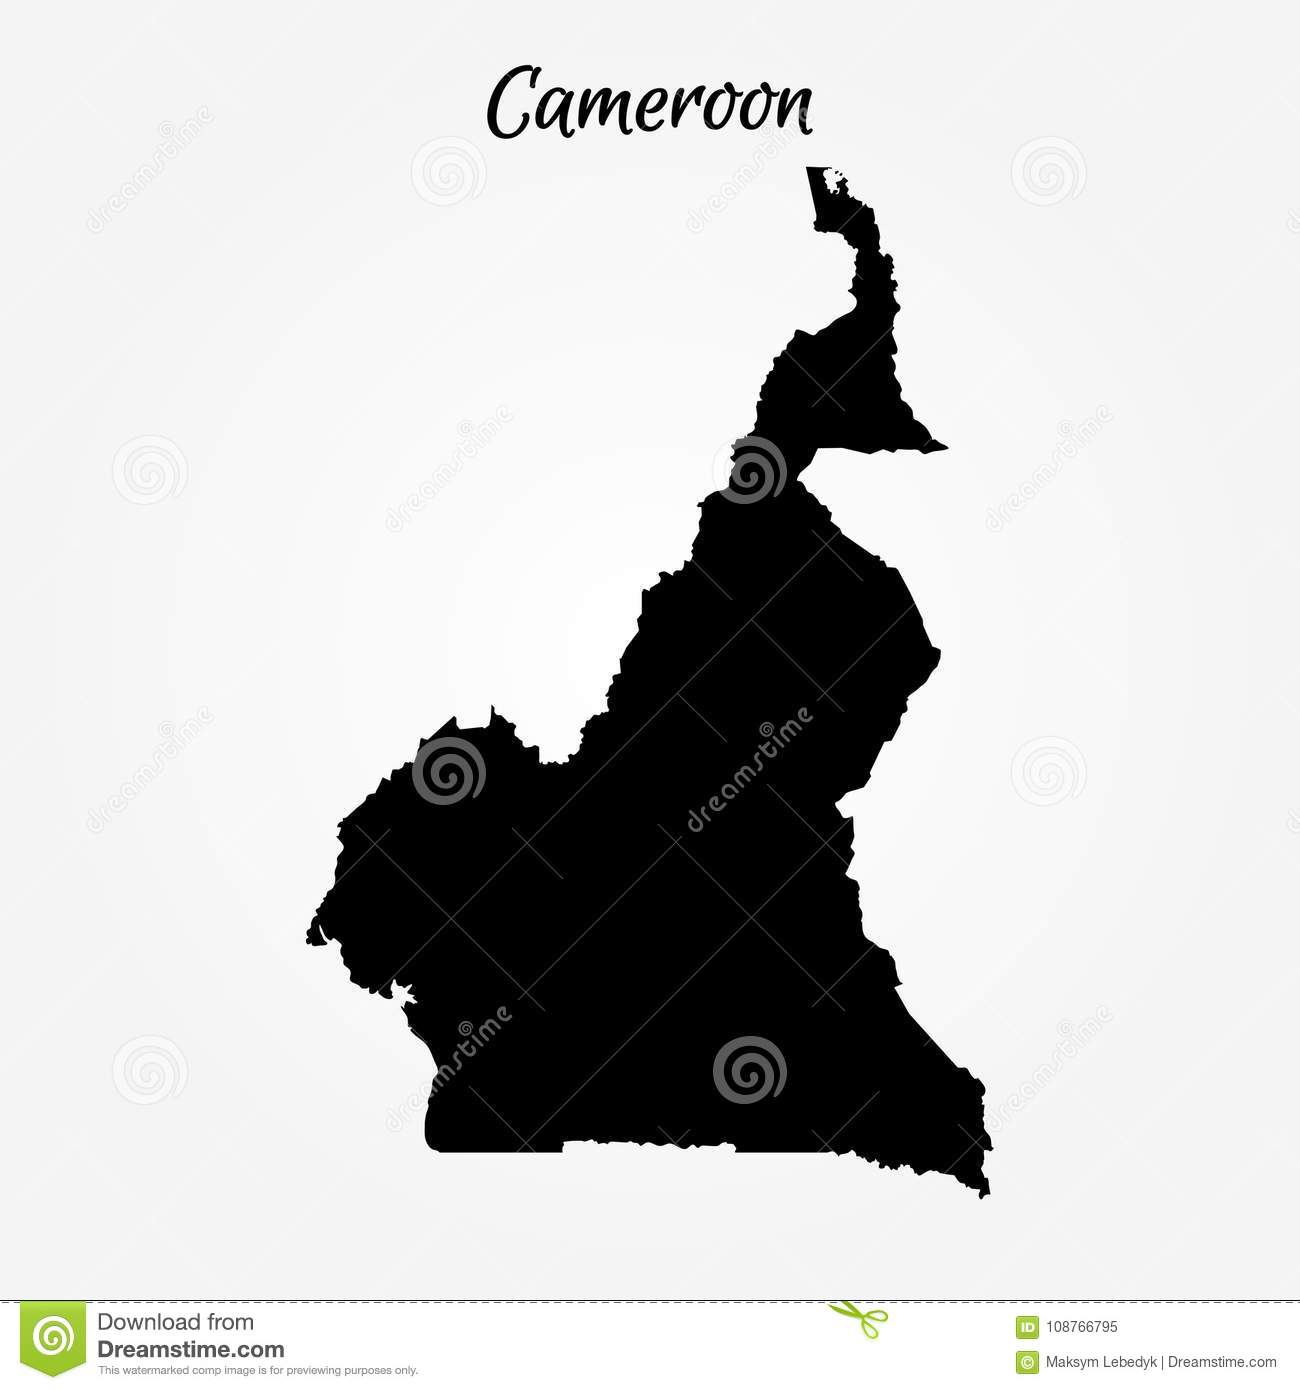 Map of Cameroon stock illustration. Illustration of cameroon - 108766795